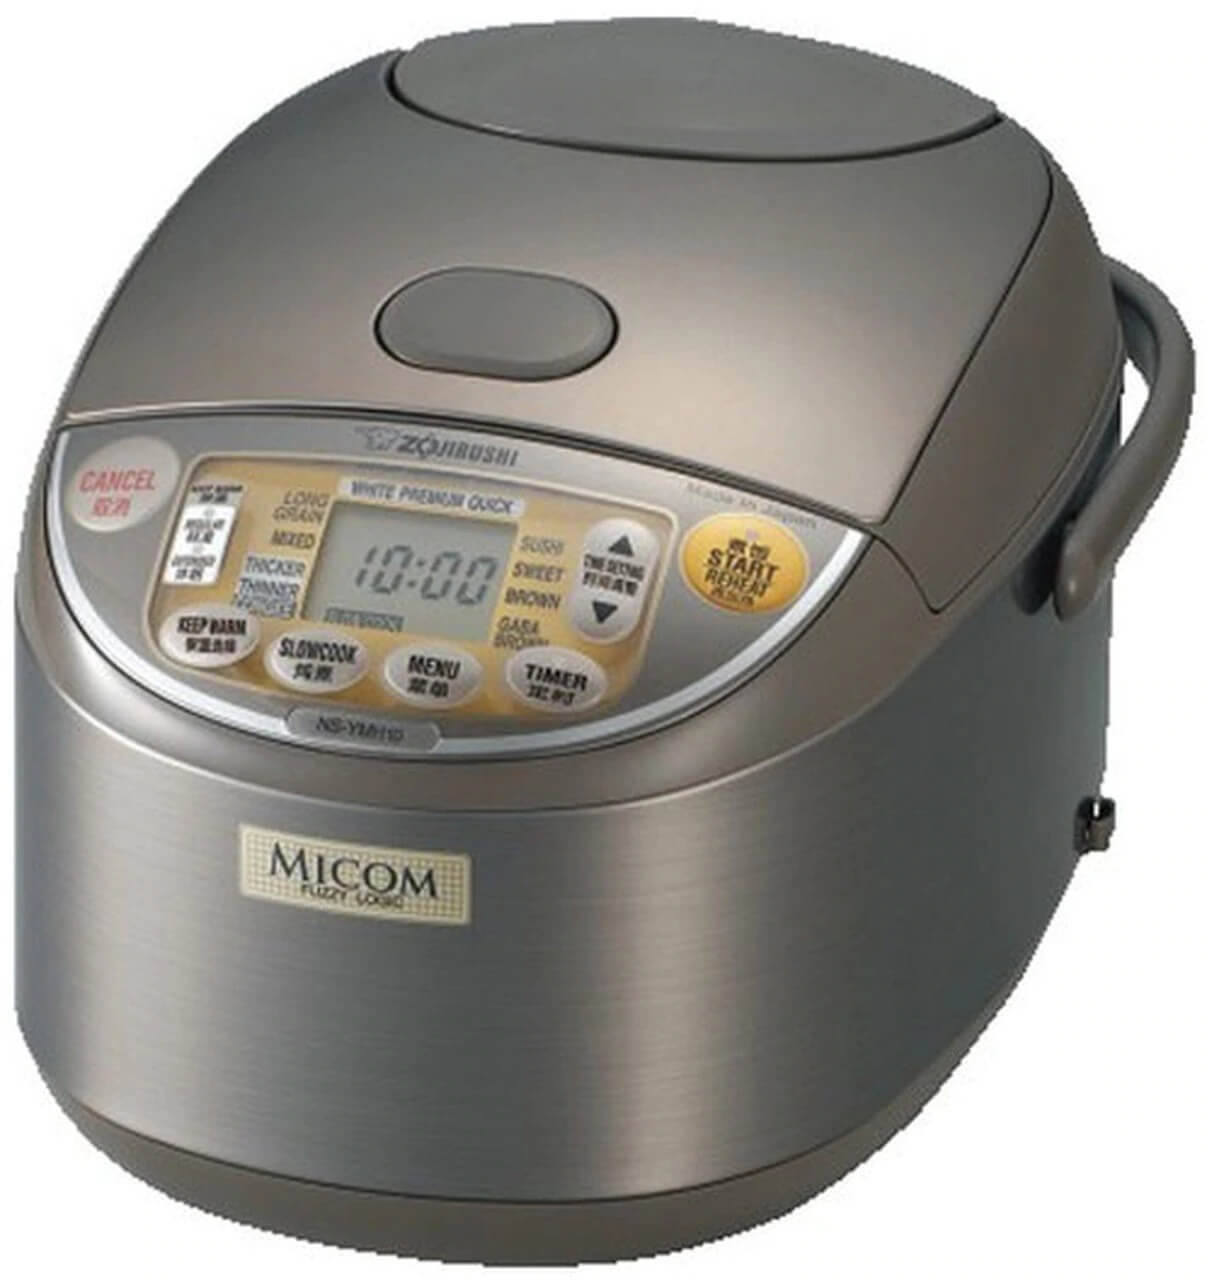 Zojirushi Rice Cooker NS-YMH18 220-230V